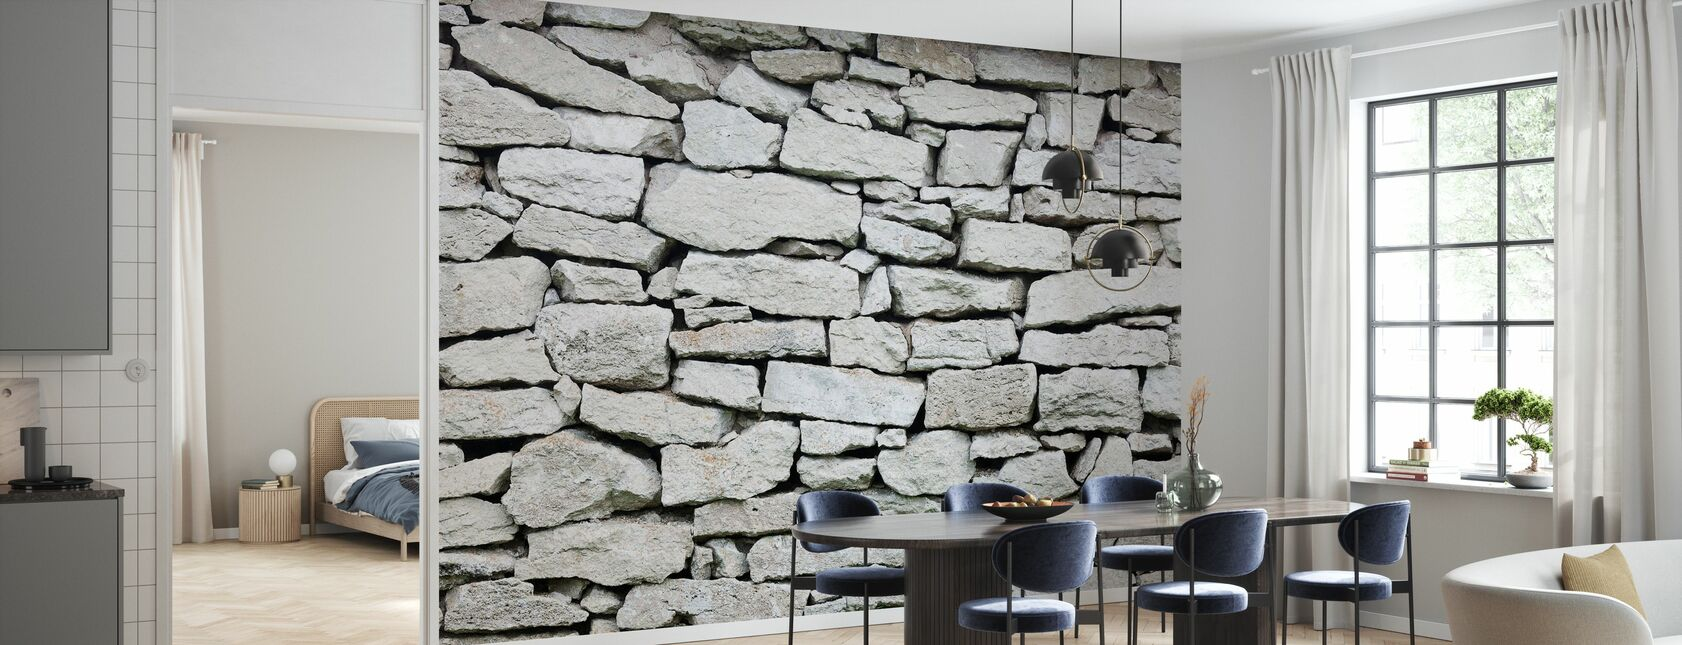 Grey Stone Wall - Wallpaper - Kitchen